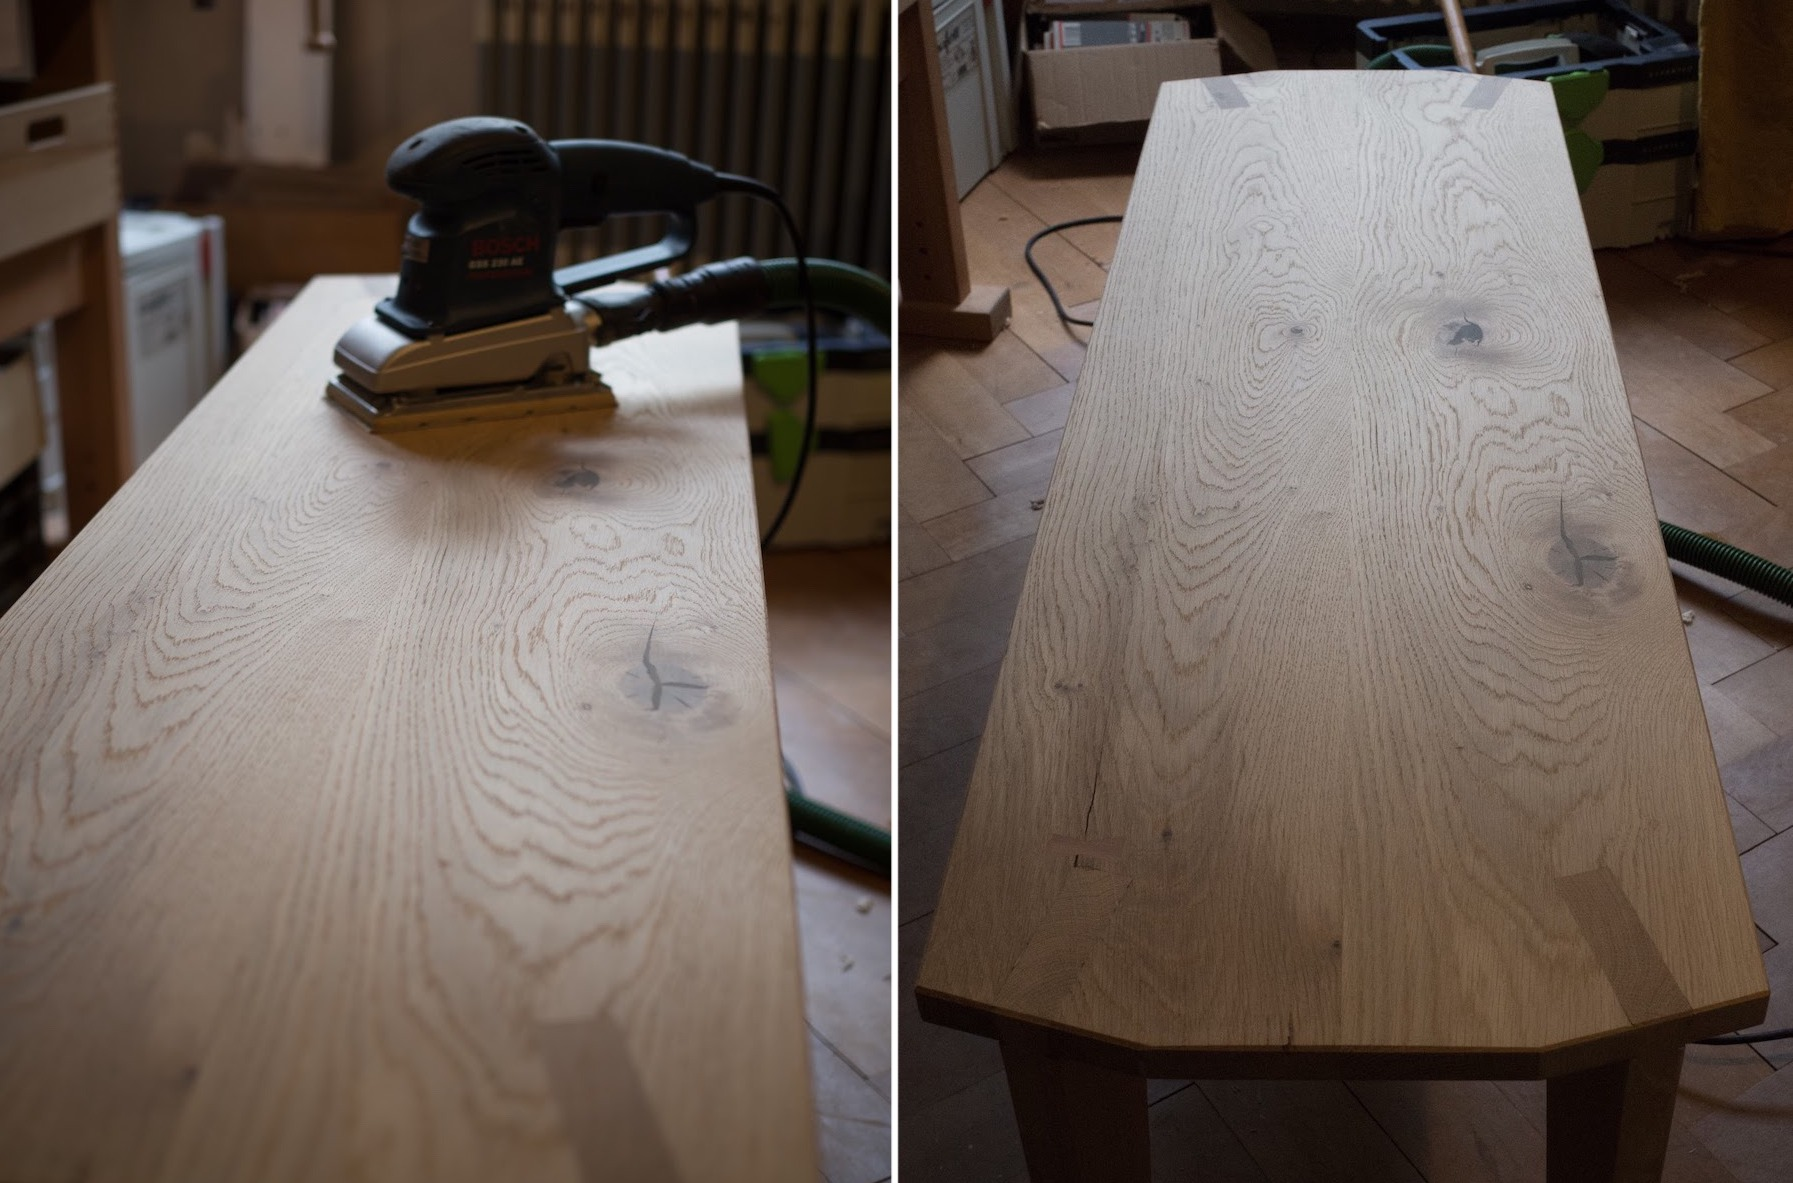 Sanding is annoying and takes forever. I still recommend going down to a pretty fine grit size like 400, it pays off in the form of a silky-smooth surface finish later.